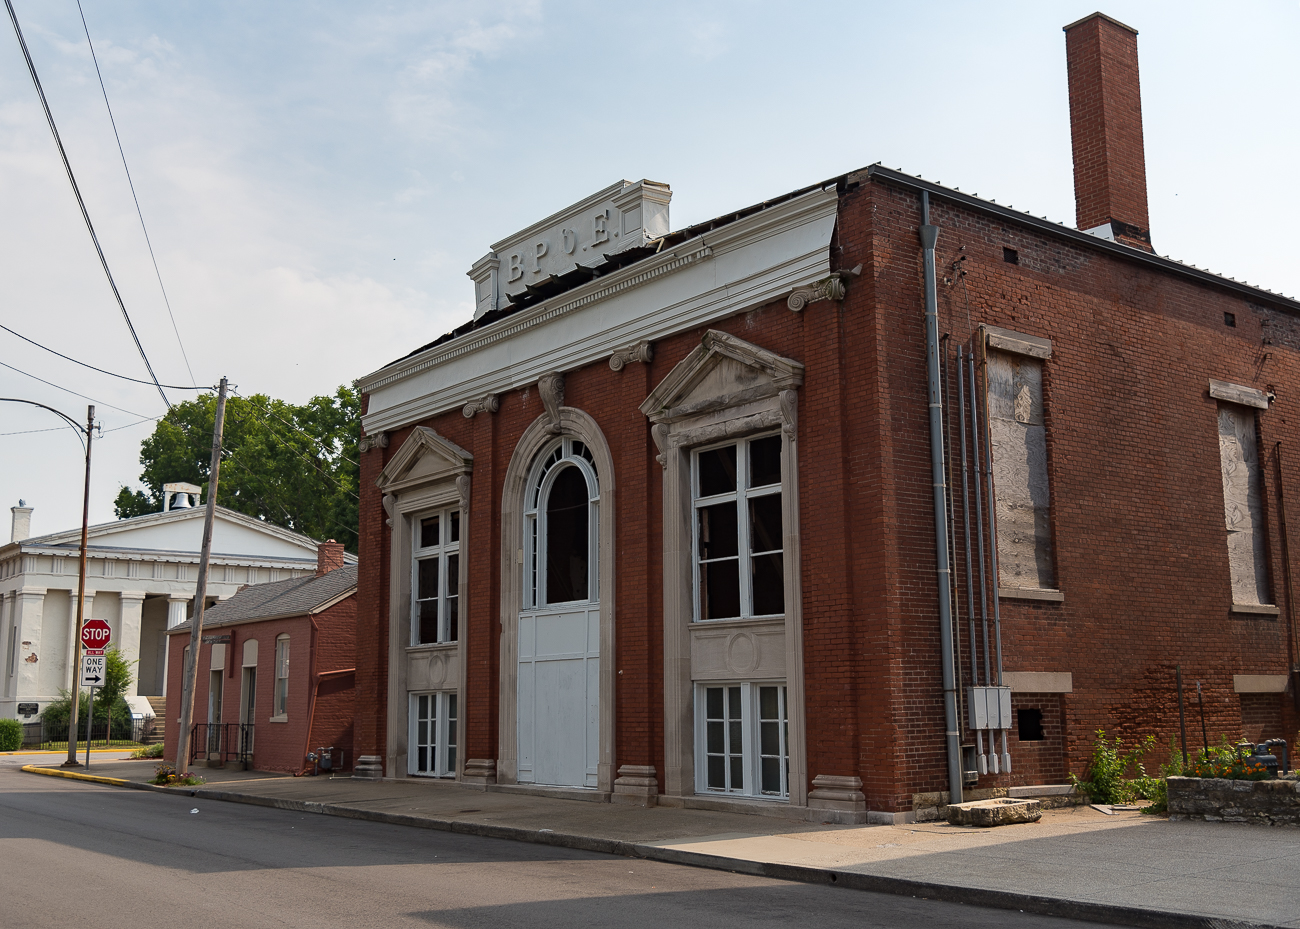 The former Madison Elks Lodge, occupied by club members since 1899. It sits next to the old City Hall building and was destroyed by fire in August 2006. ADDRESS: 420 West St. (47250) / Image: Phil Armstrong, Cincinnati Refined // Published: 7.29.17